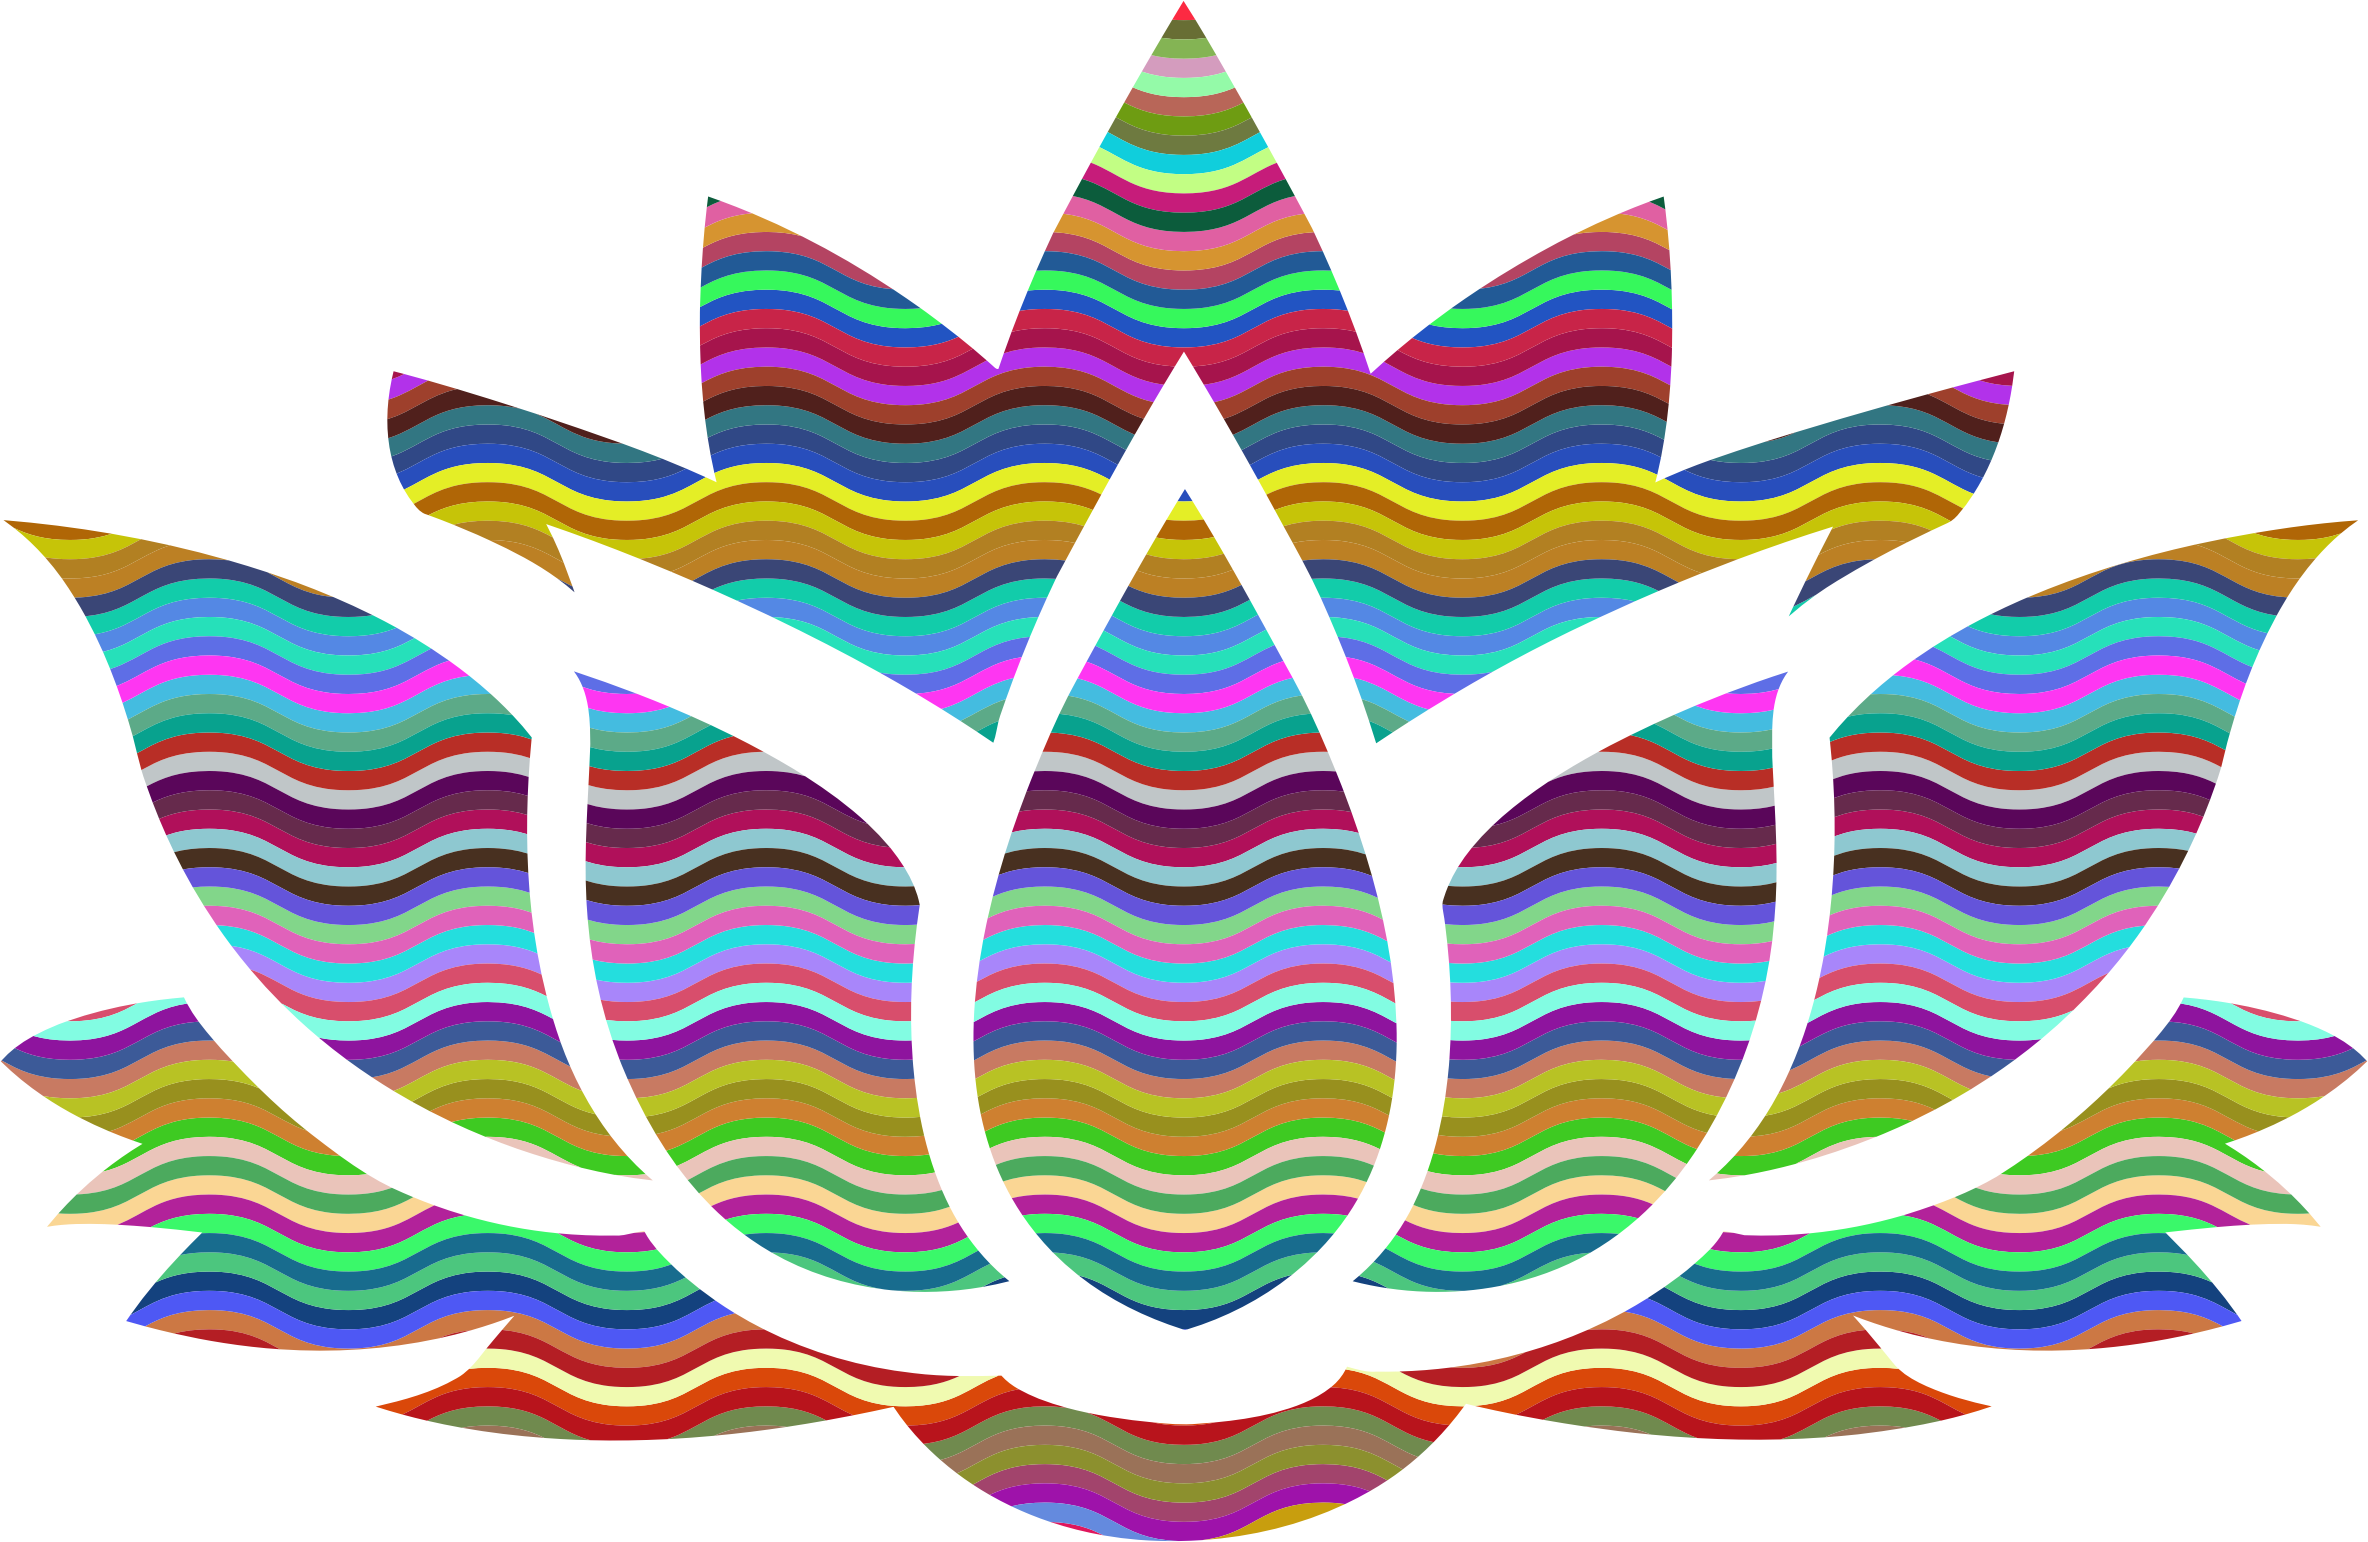 2368x1542 Prismatic Waves Lotus Flower Silhouette Icons Png